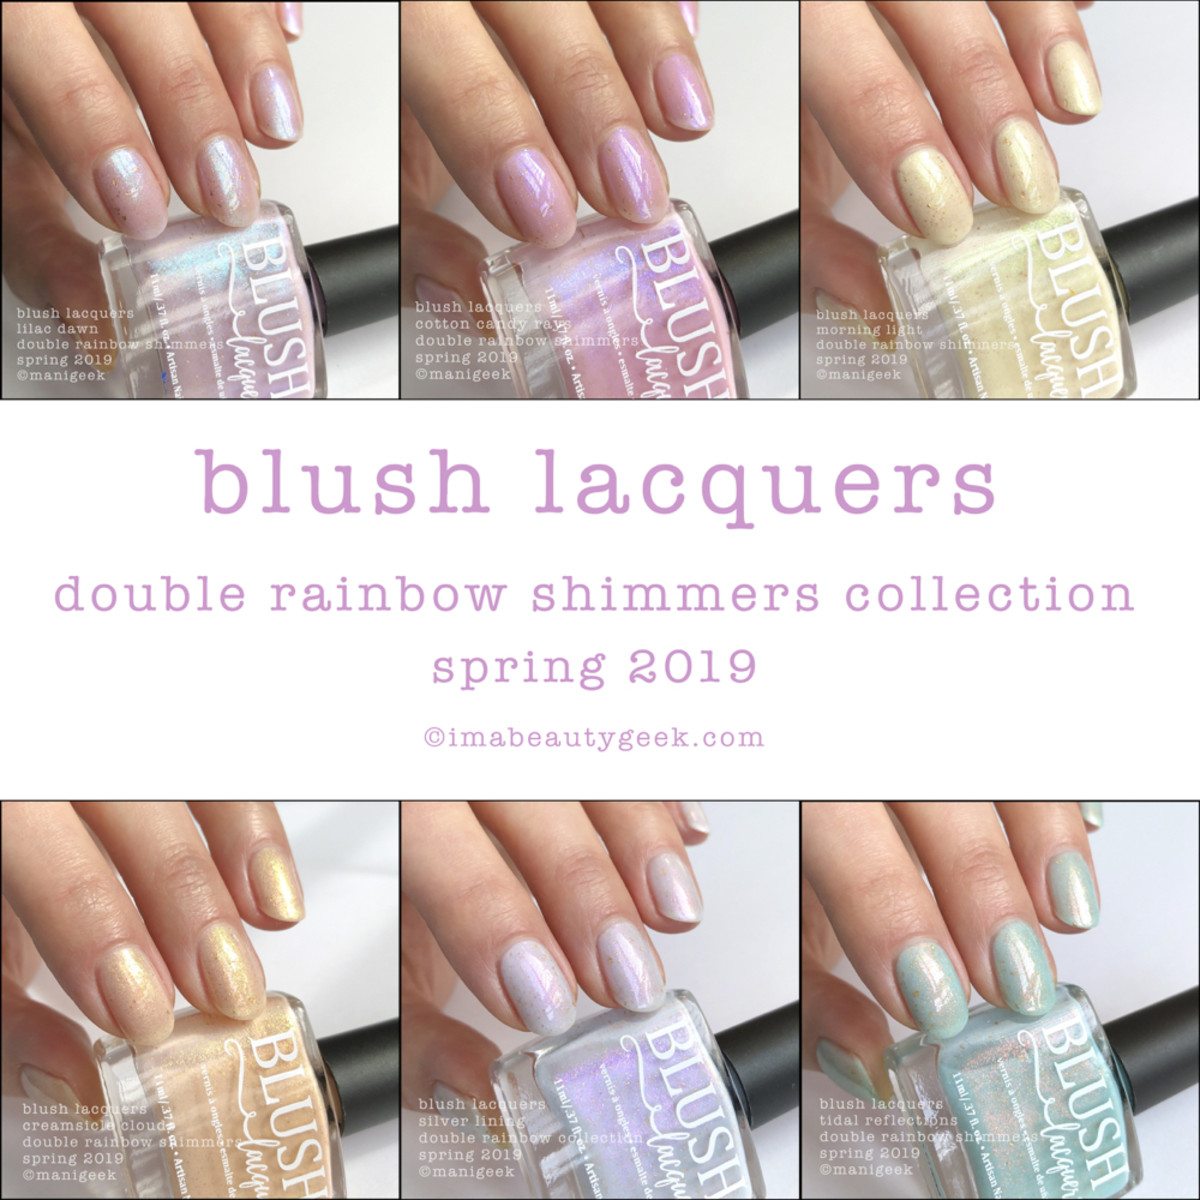 Blush Lacquers Double Rainbow Shimmers Collection Swatches